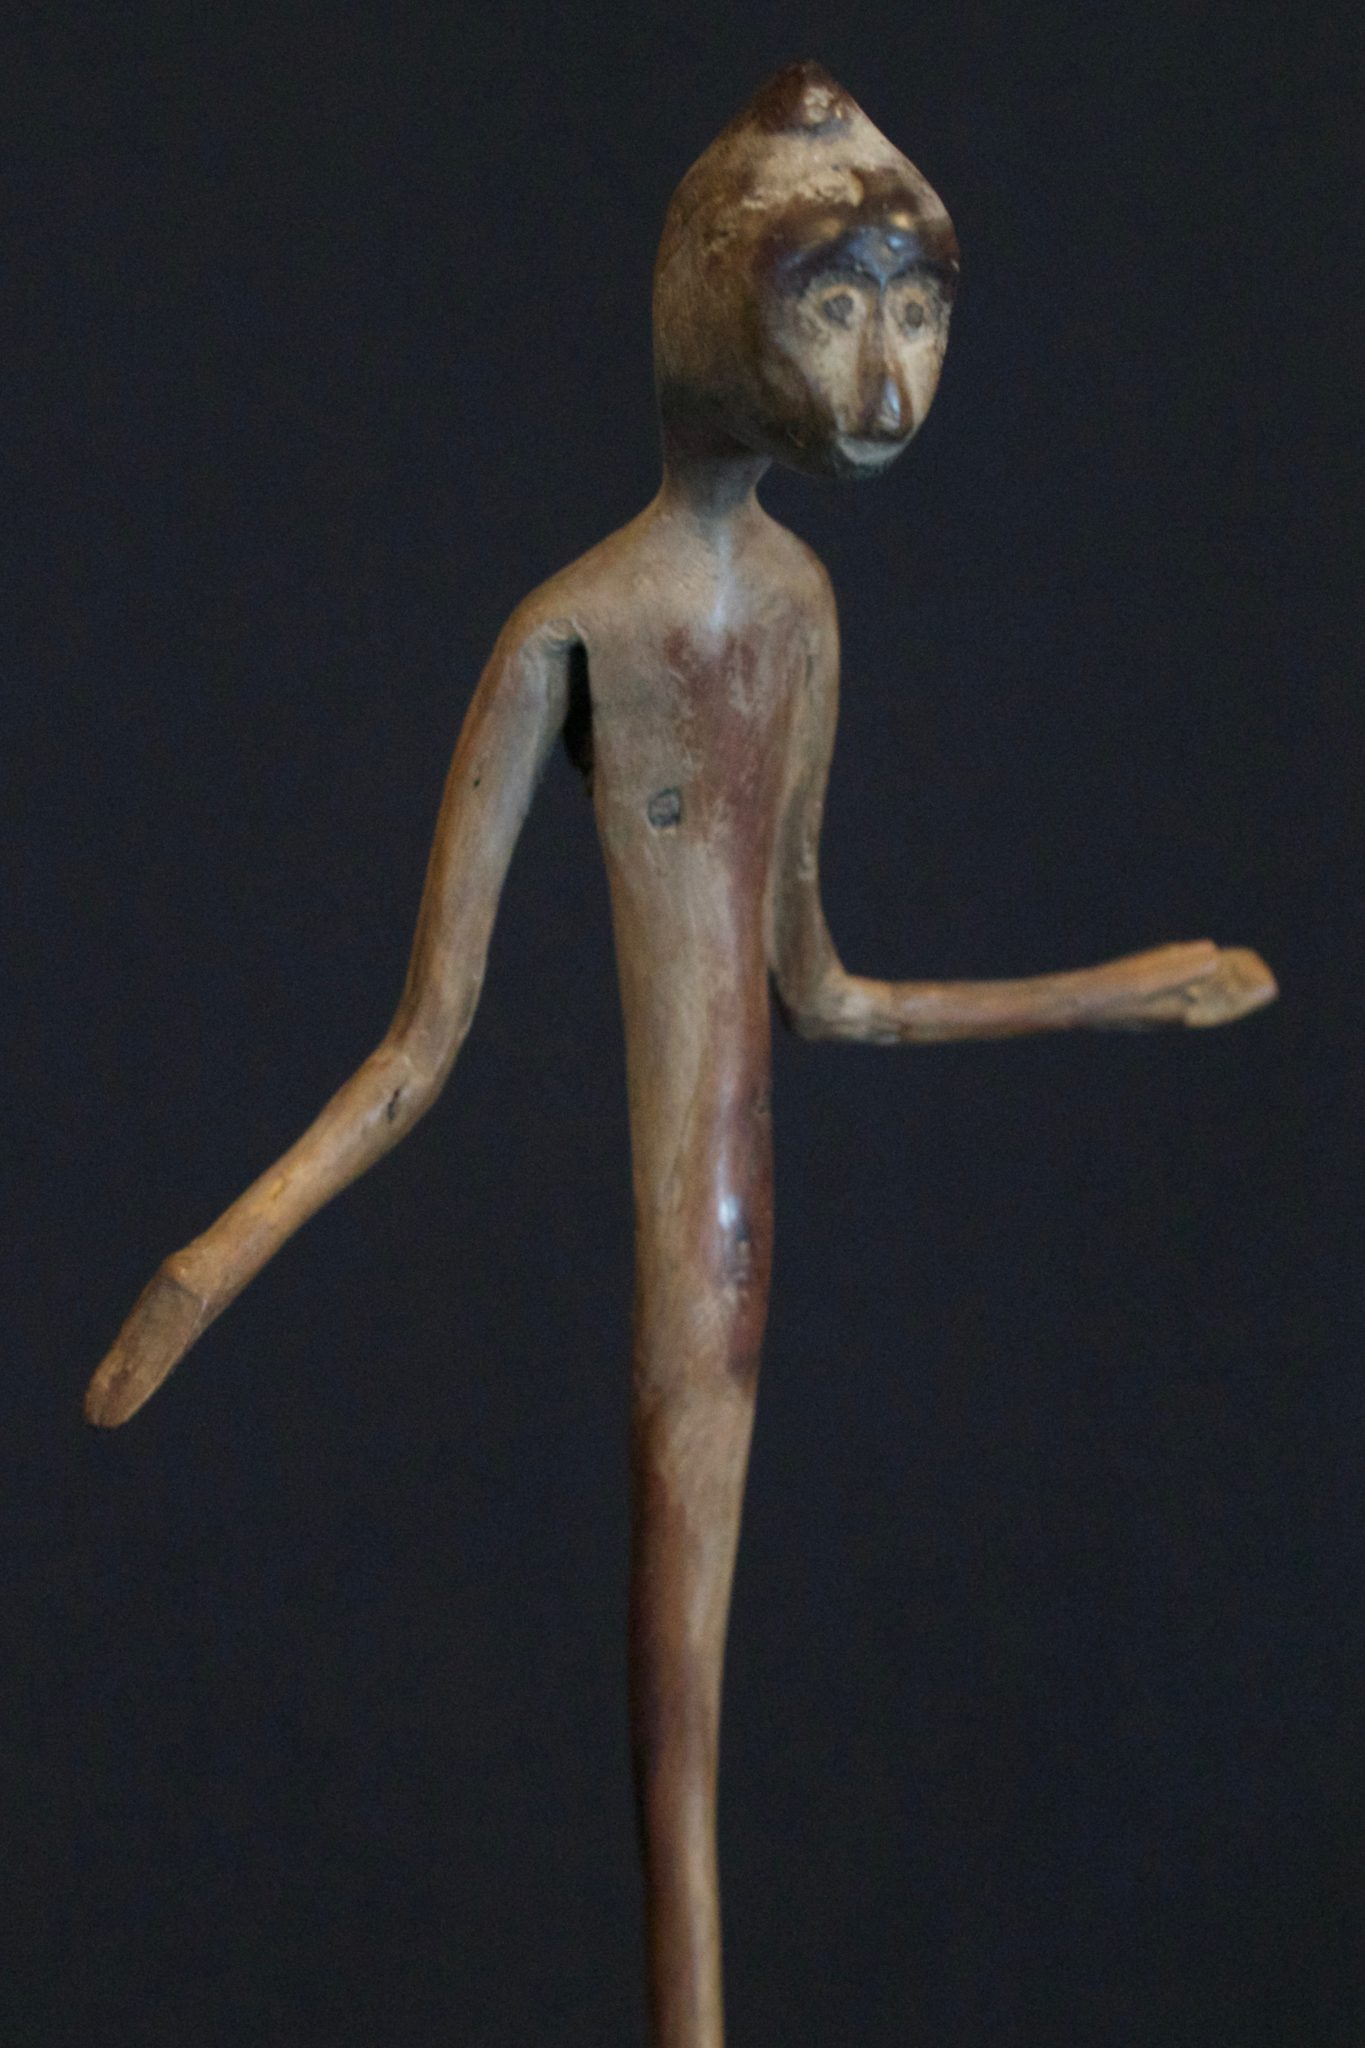 Magic Amulet/Talisman Figure, West Sumba Island, Lesser Sunda Islands, Indonesia, Anakalang village Mid 20th c, Wood Magic amulet used for healing rituals. Sold